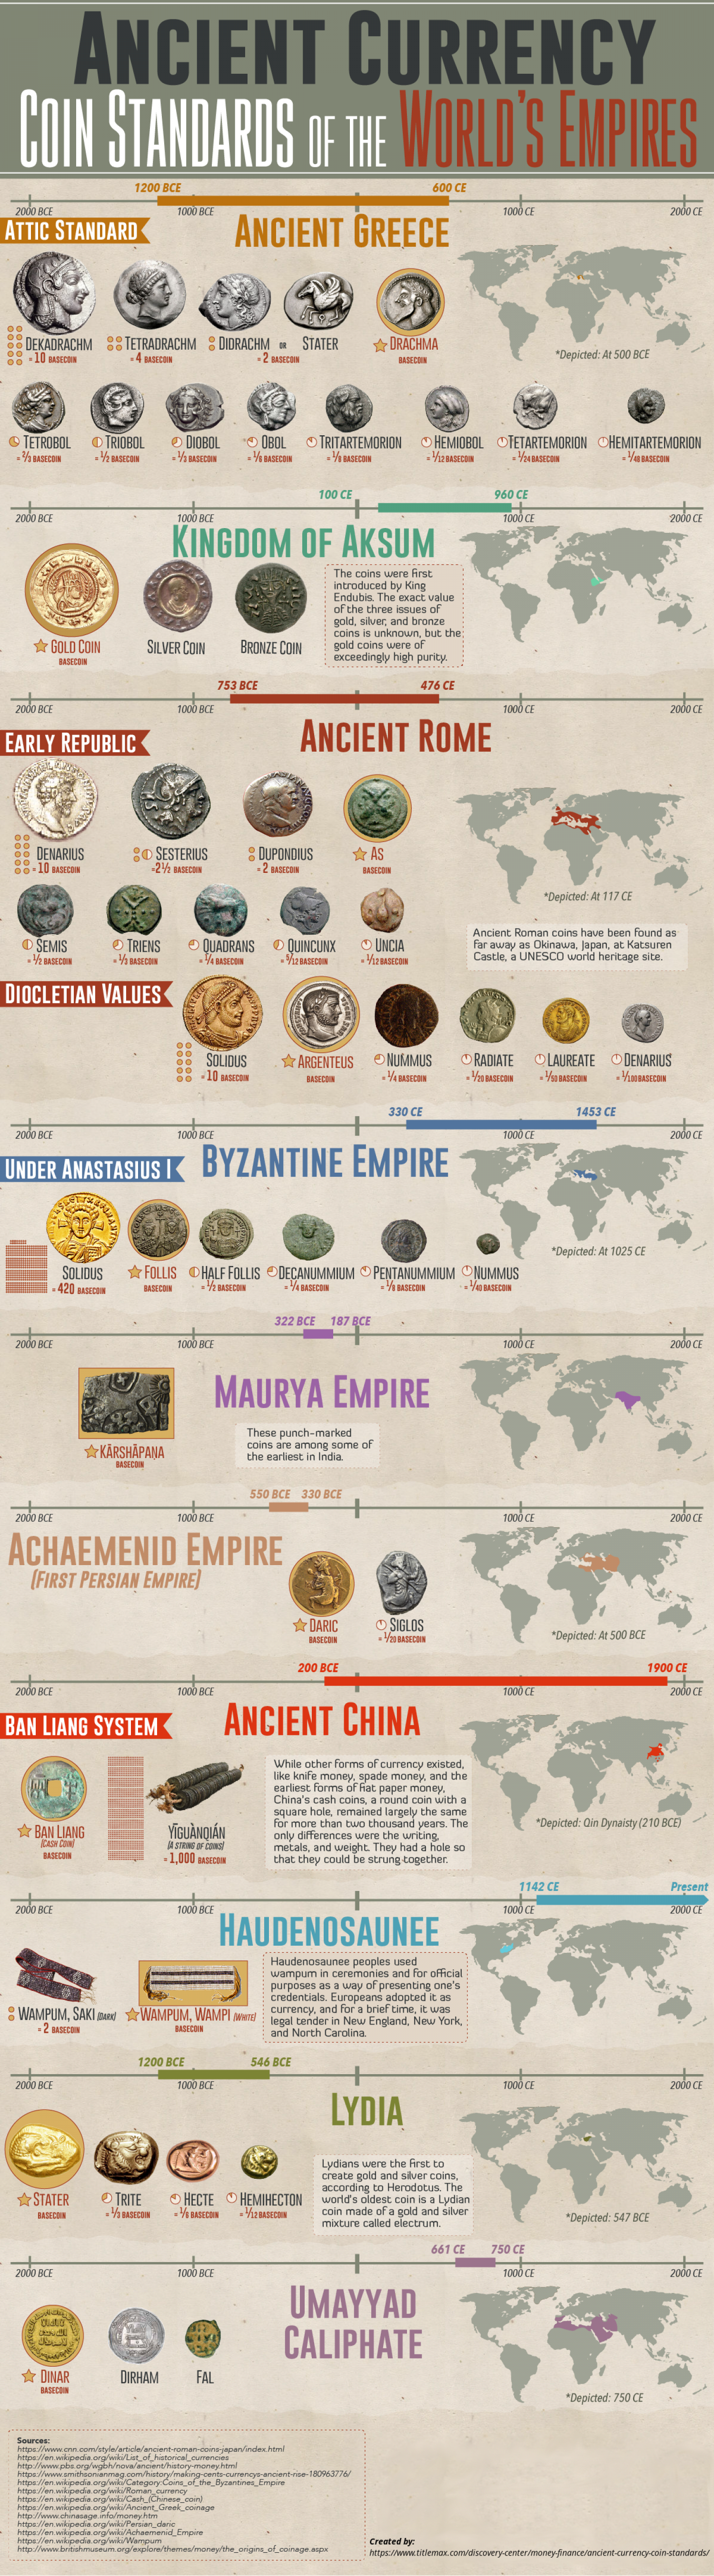 Ancient Currency - Coin Standards of the World's Empires Infographic